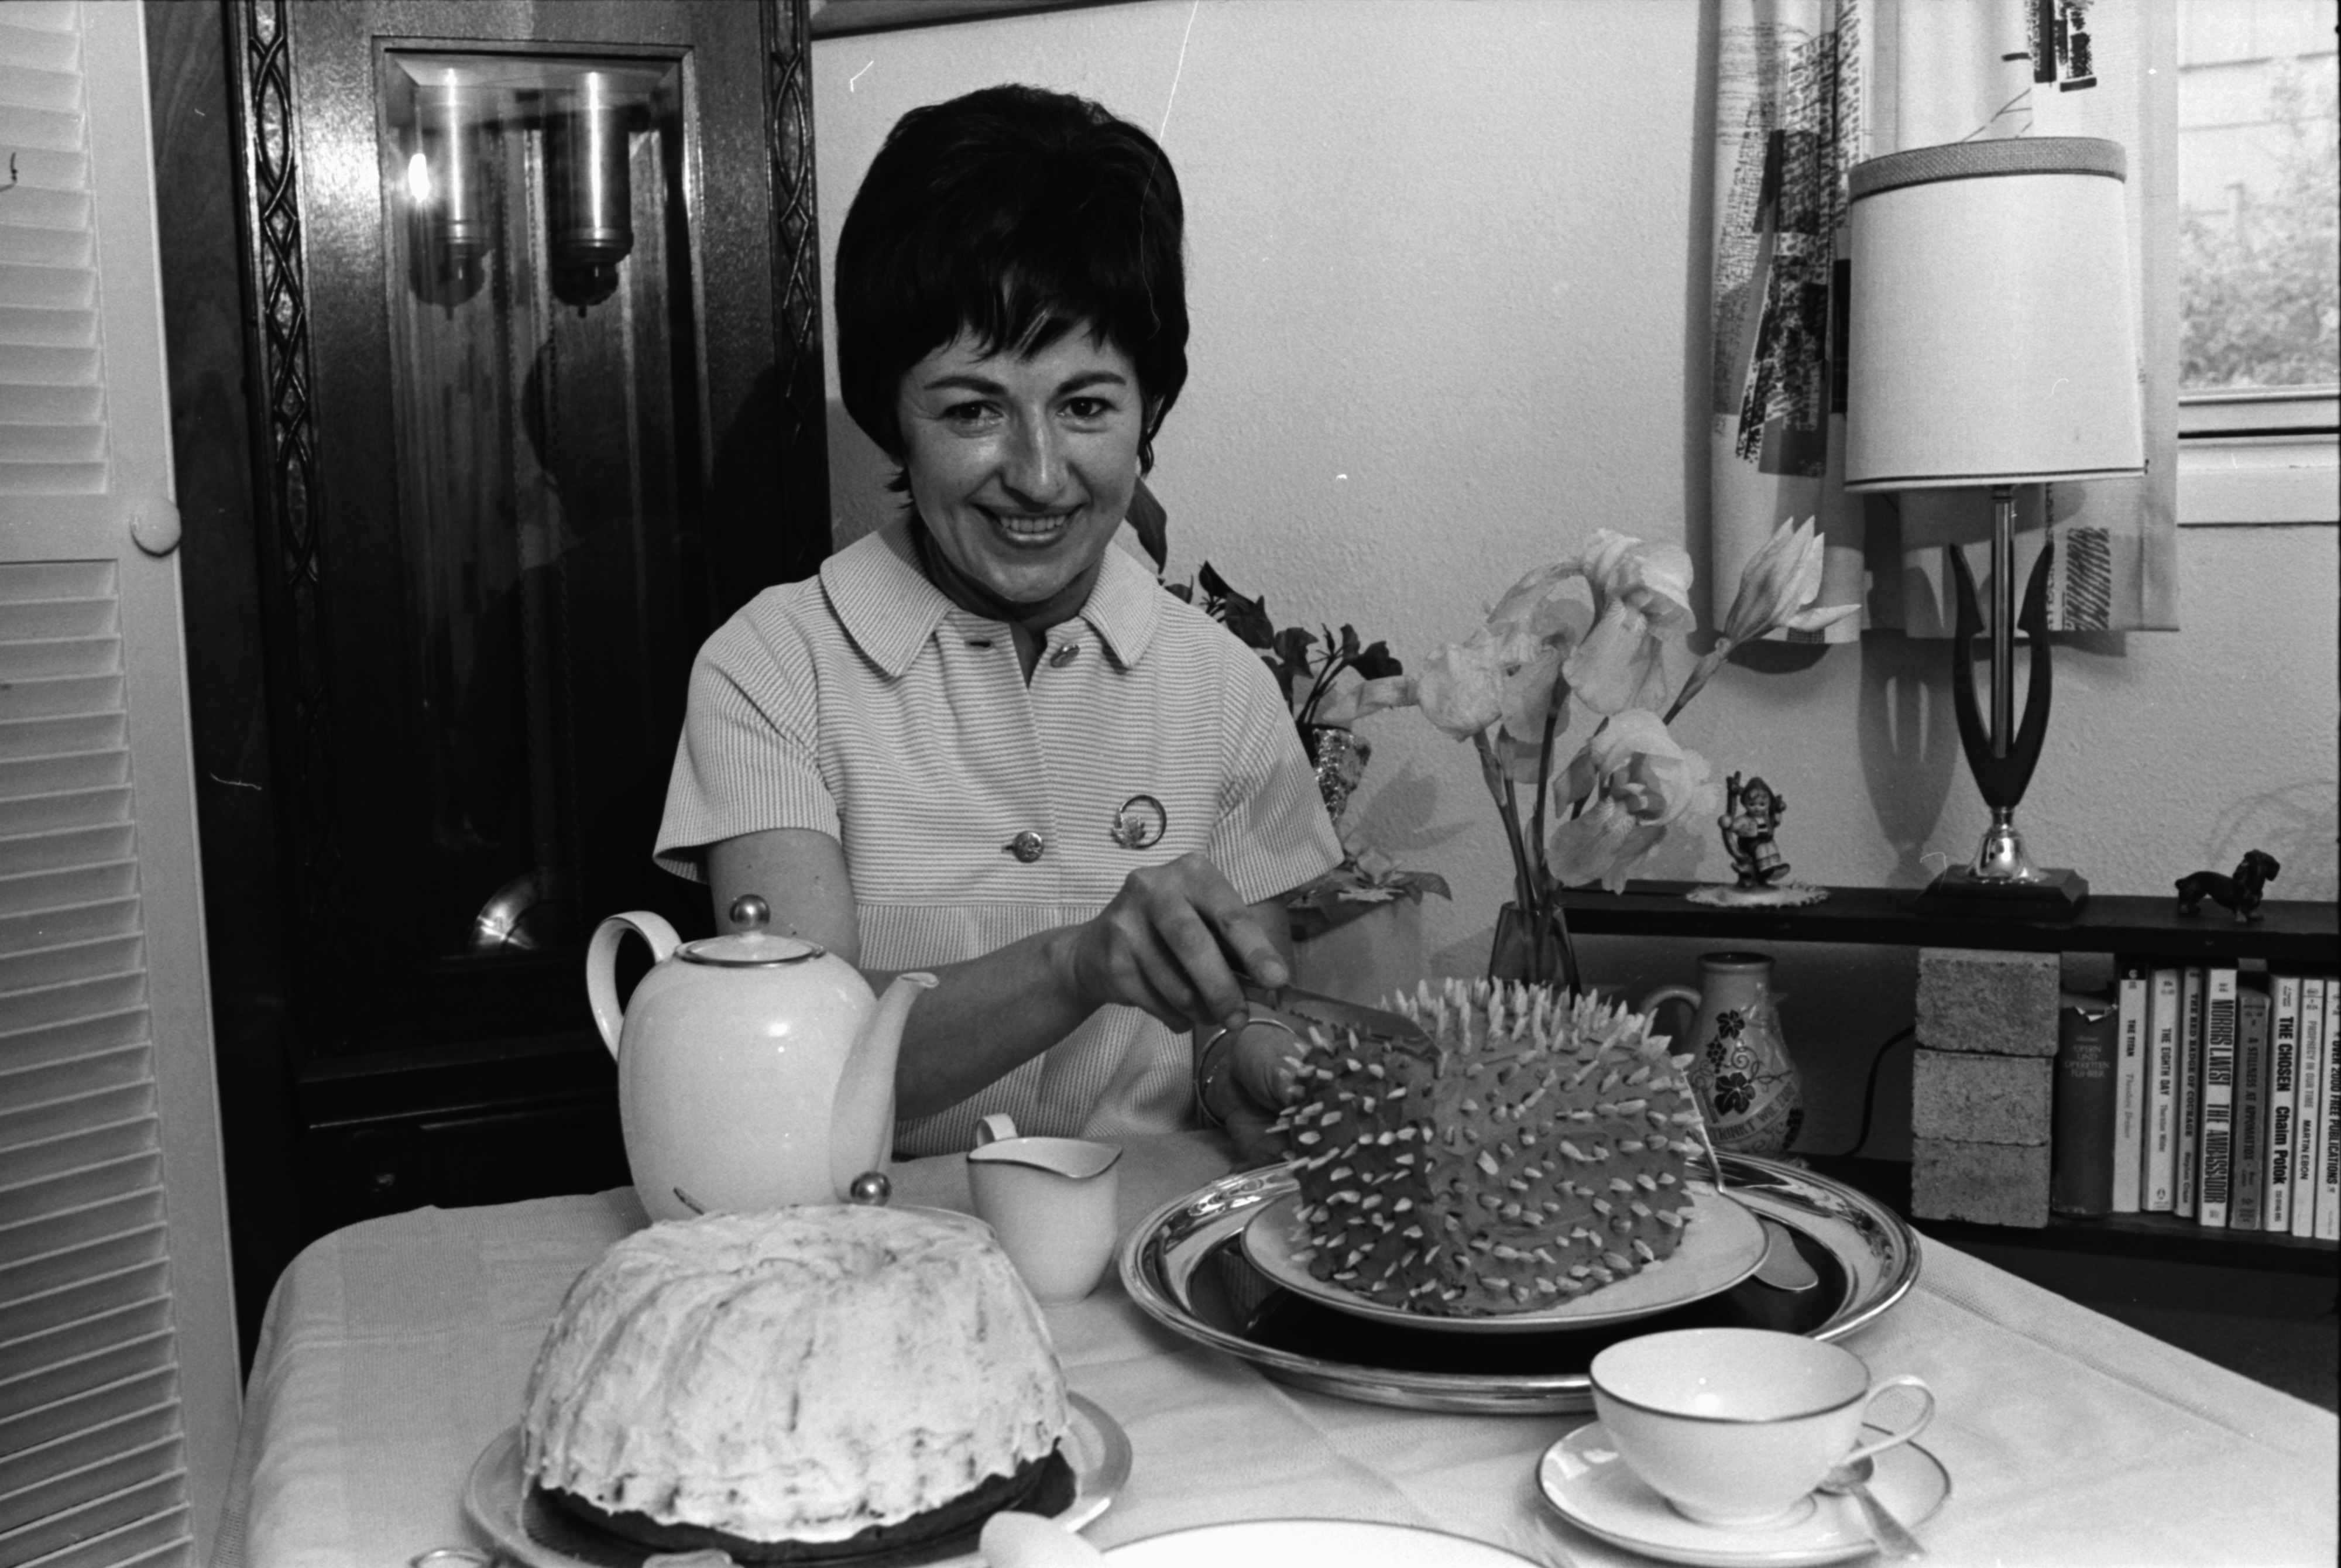 Image from German Porcupine Torte and Napfkuchen, May 1969